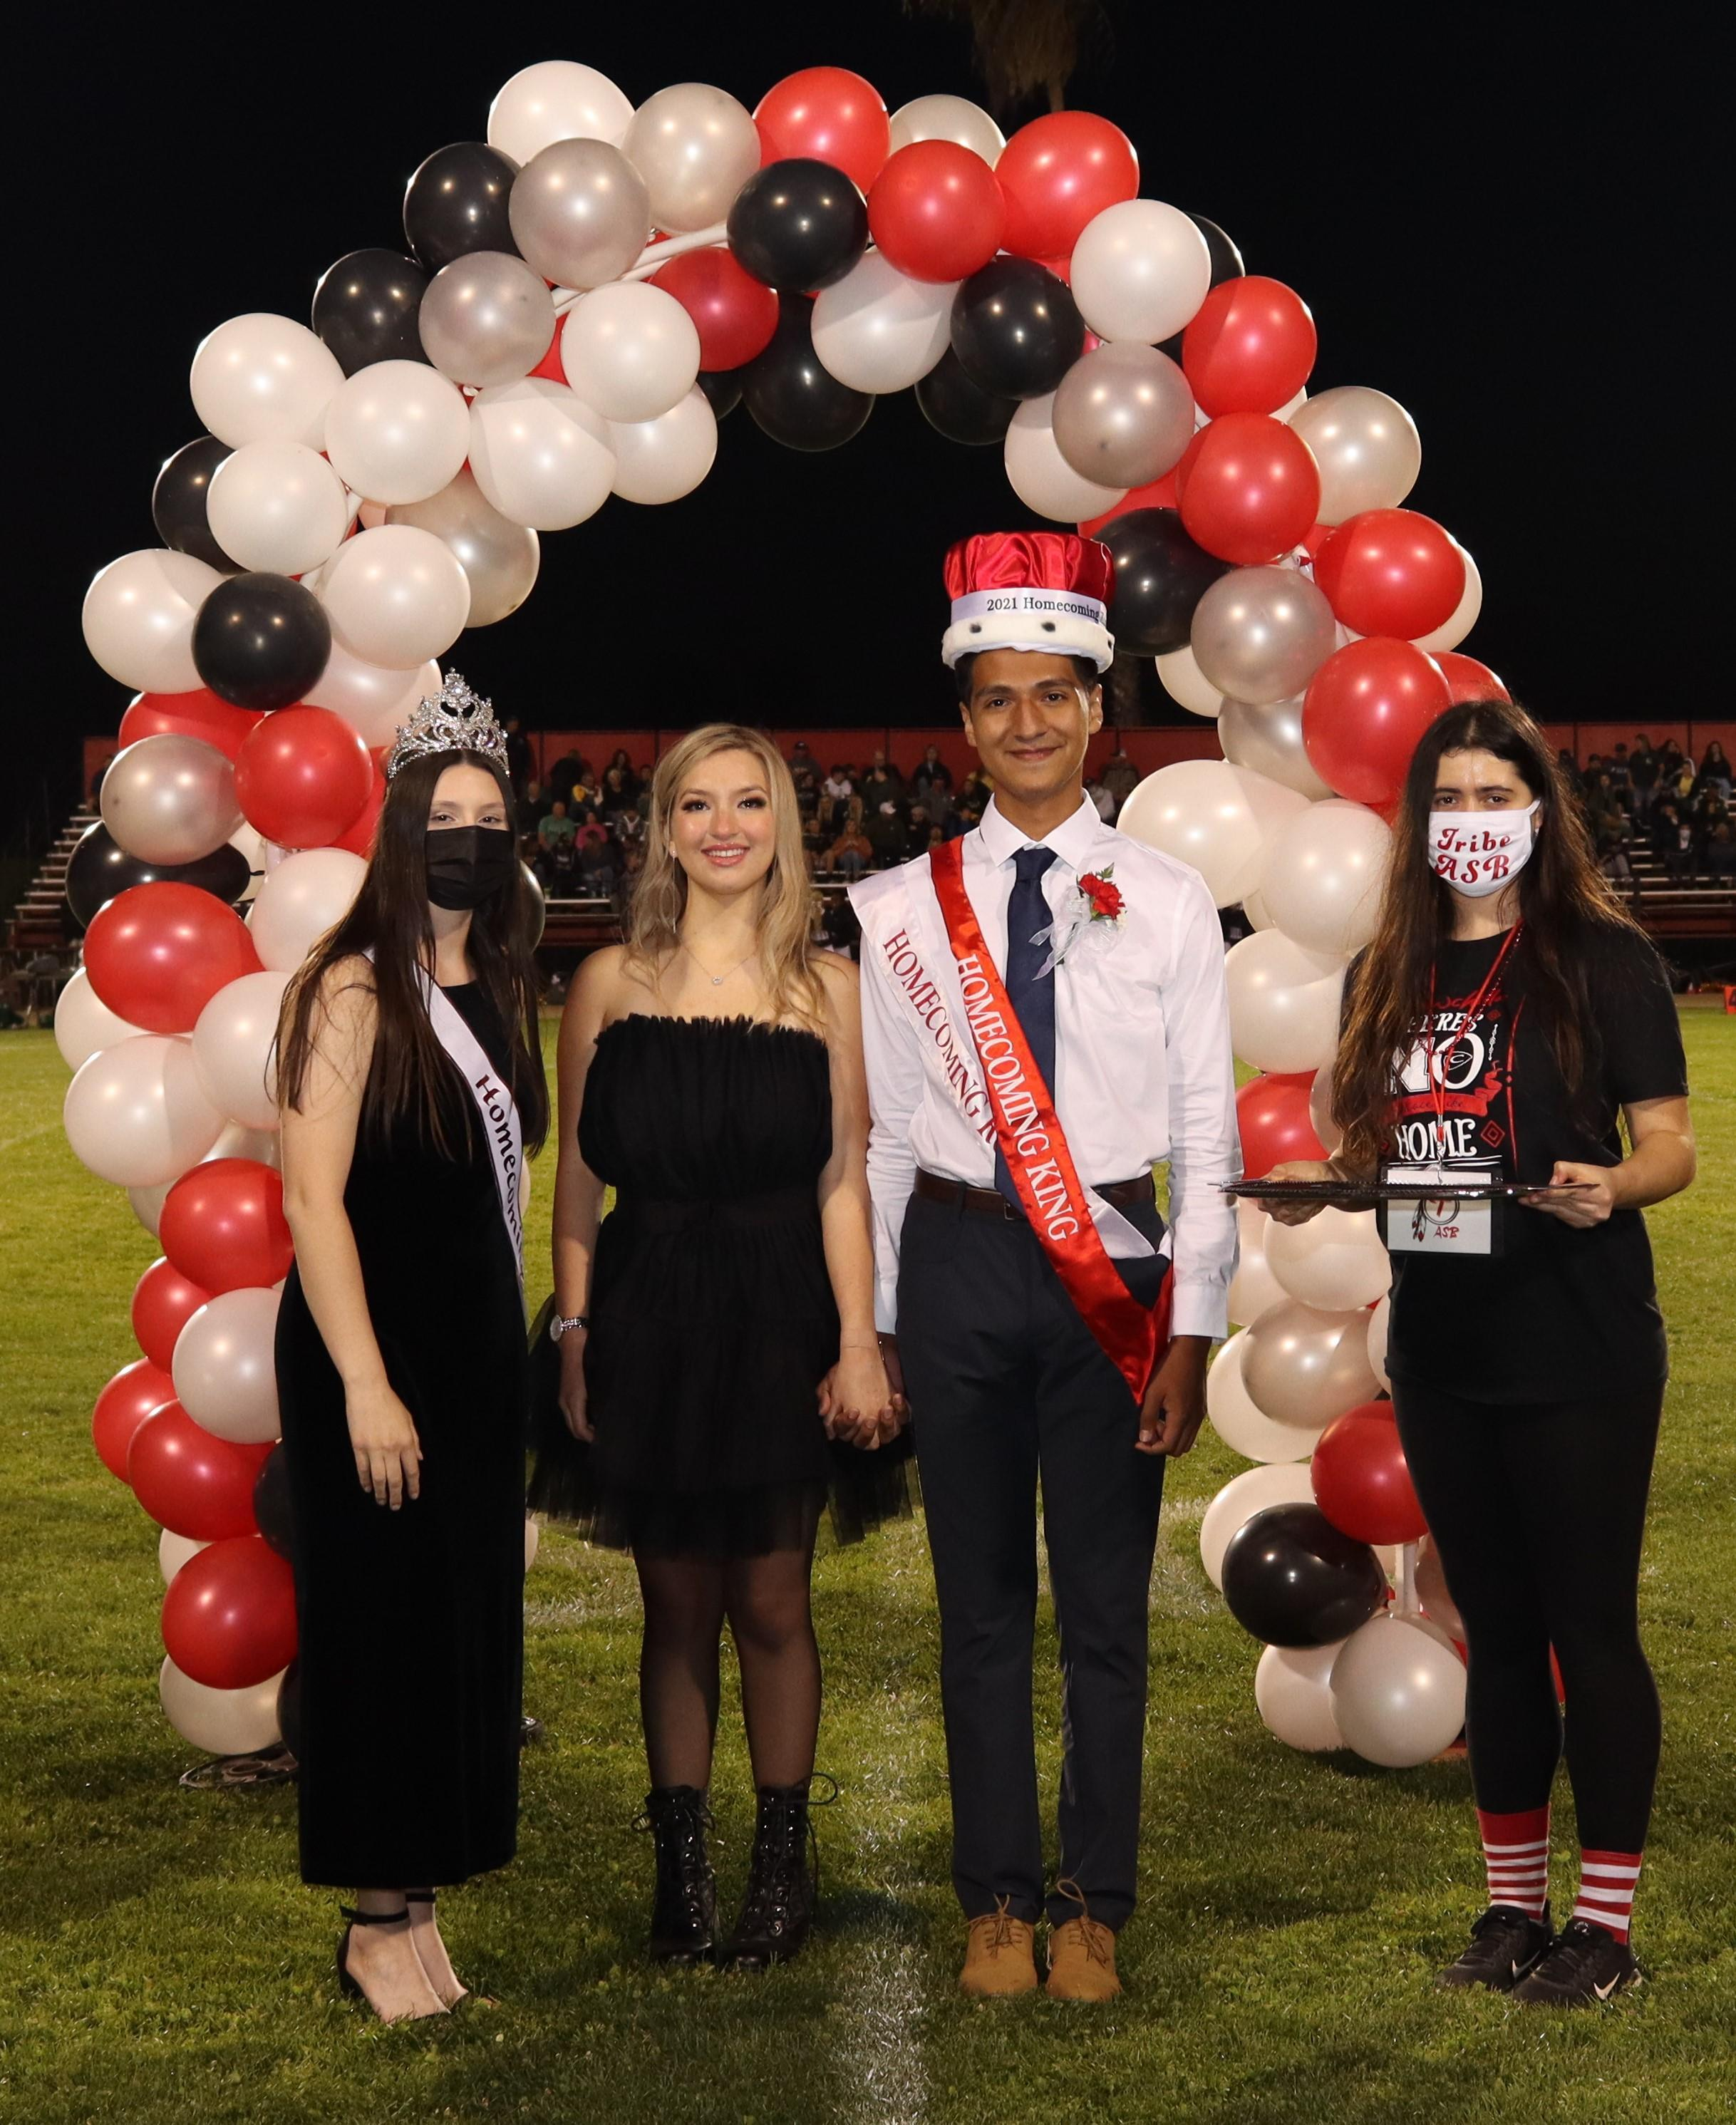 homecoming candidates at halftime